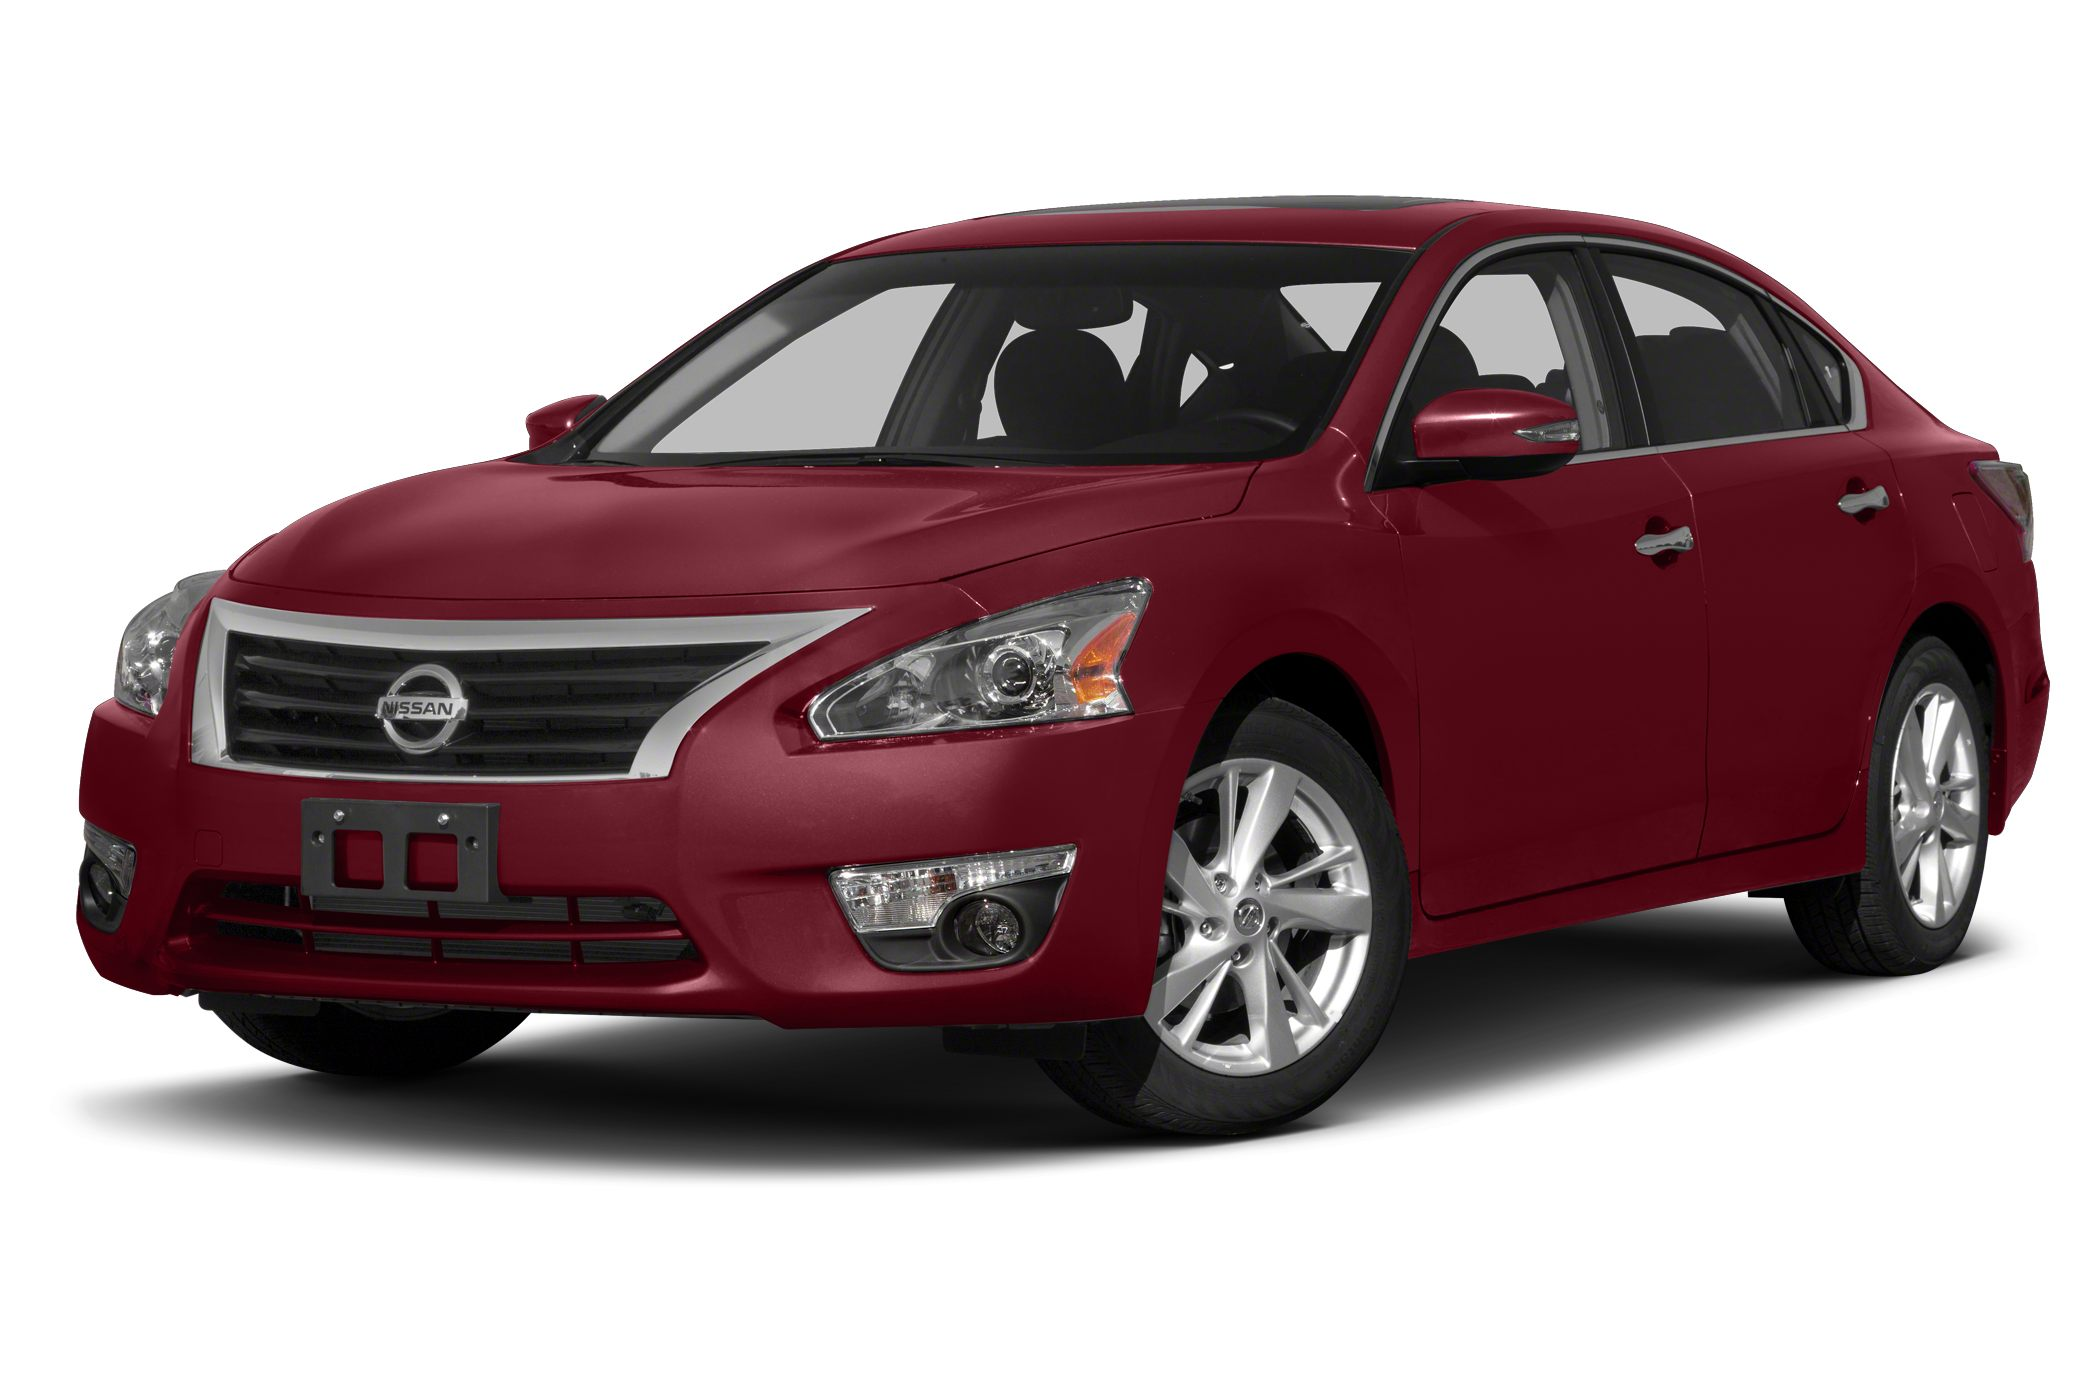 2014 Nissan Altima 2.5 SL Sedan for sale in Columbia for $30,095 with 0 miles.